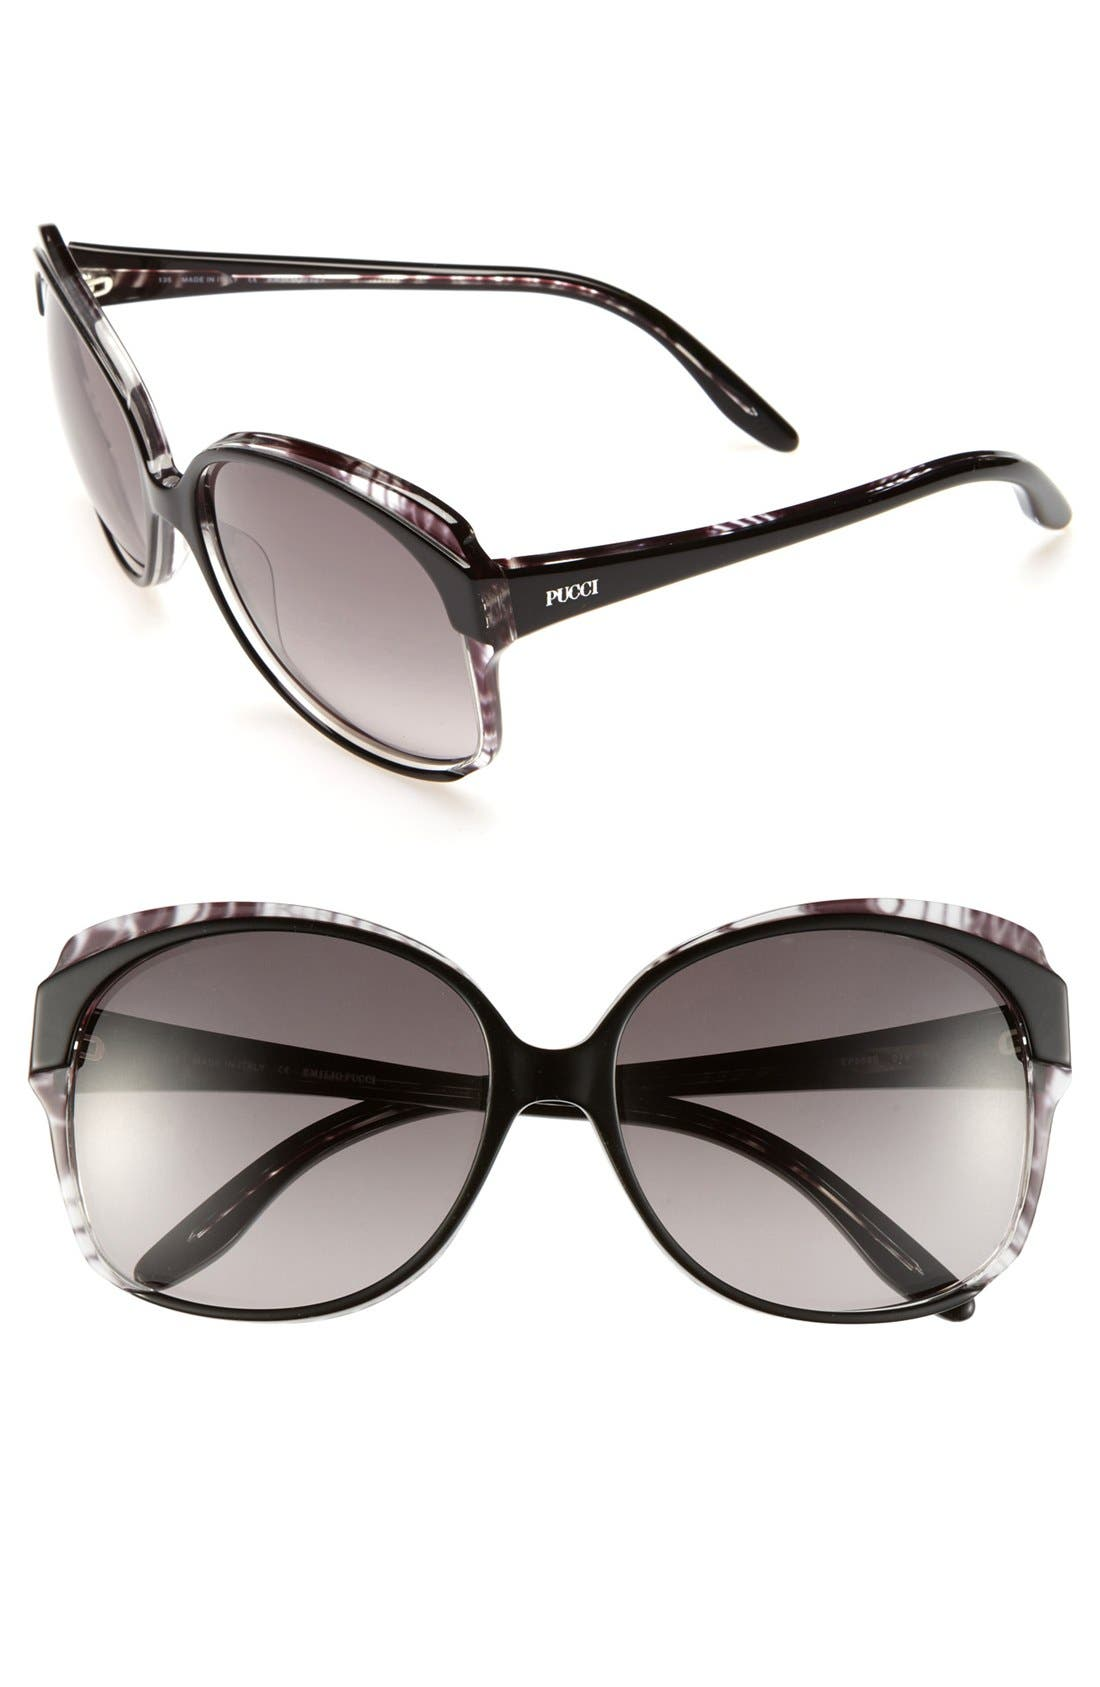 Main Image - Emilio Pucci 58mm Sunglasses (Special Purchase)